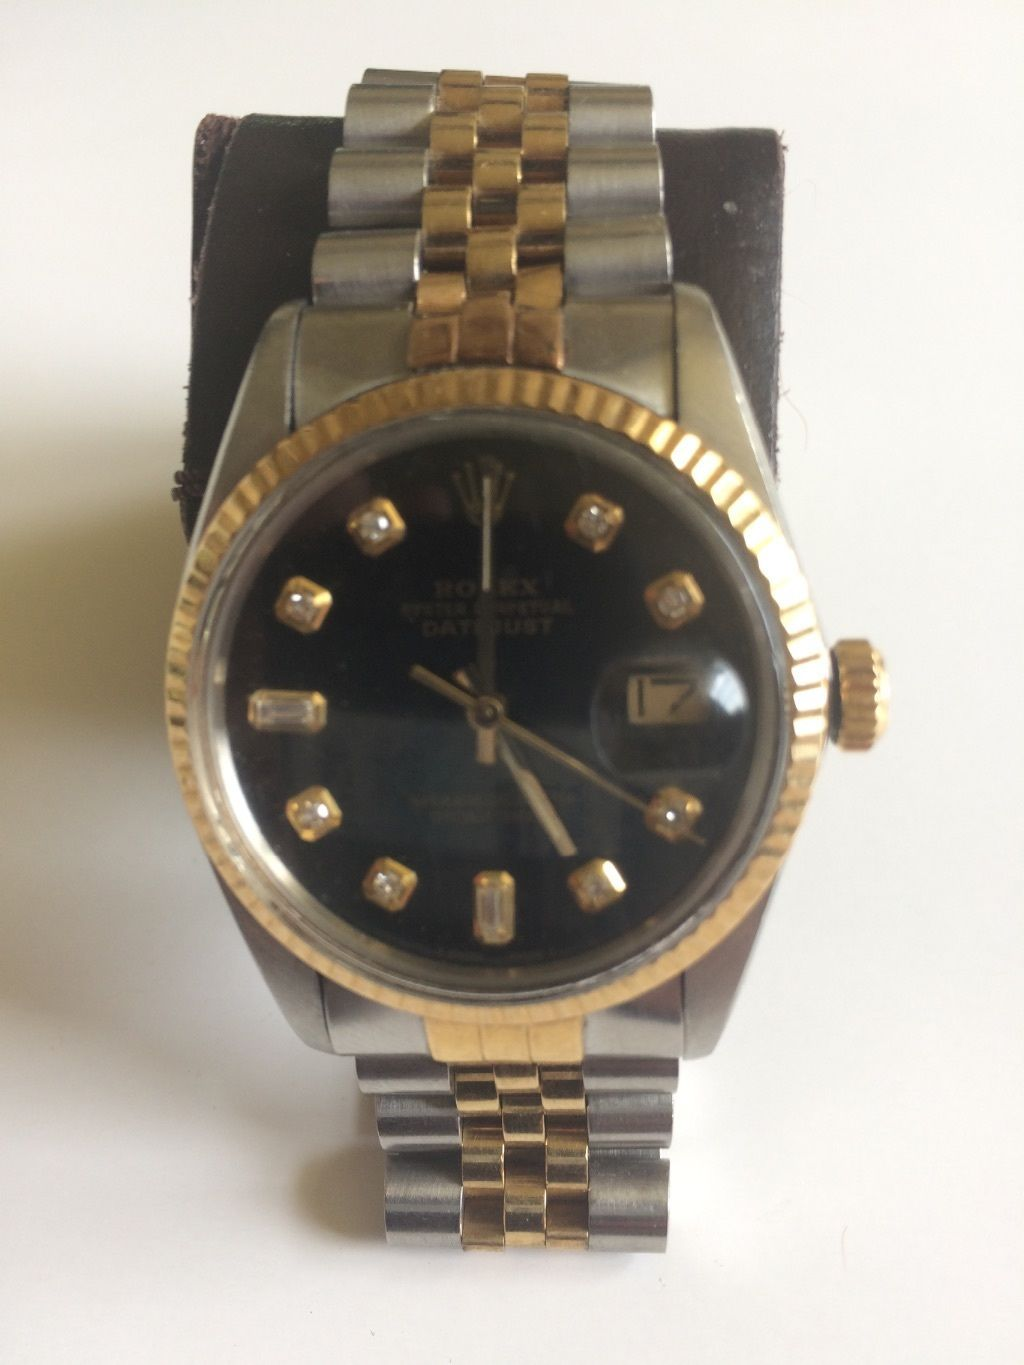 Forsale Rolex Oyster Perpetual Datejust 18k Yellow Gold Stainless Blk Face W Diamonds Auction 2 000 00 Oyster Perpetual Datejust Rolex Gold